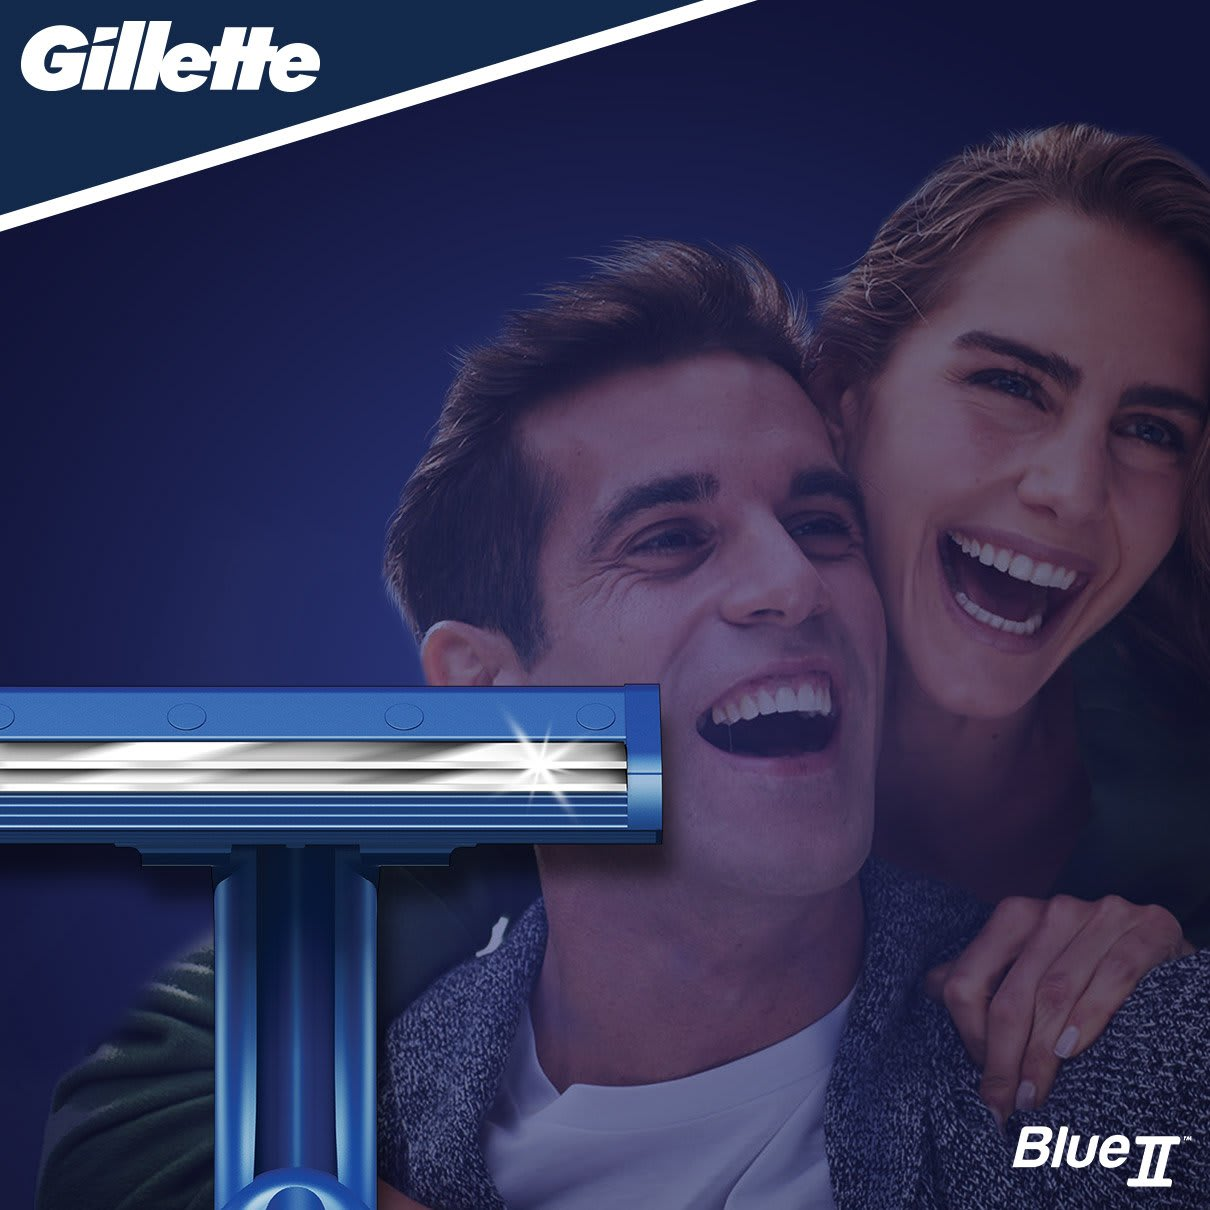 Gillette BlueII Rasoio Da Uomo Usa E Getta